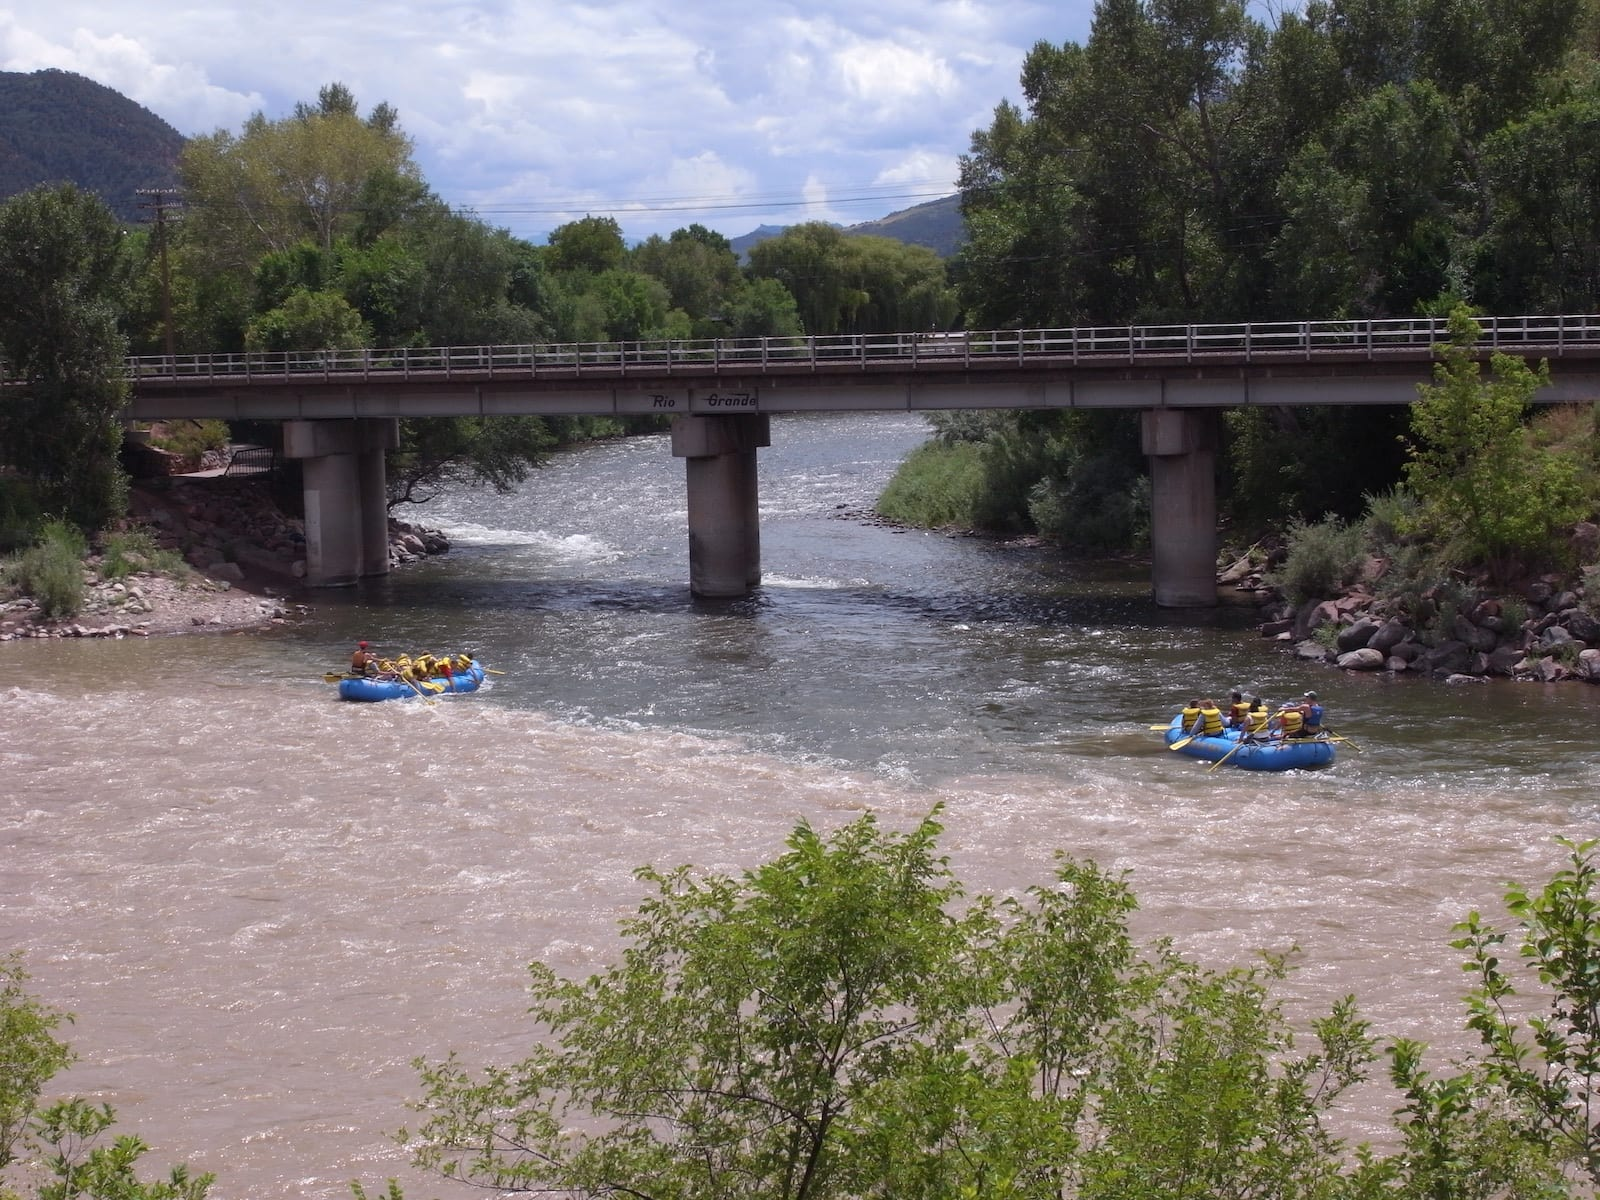 Confluence of Roaring Fork River and Colorado River in Glenwood Springs CO